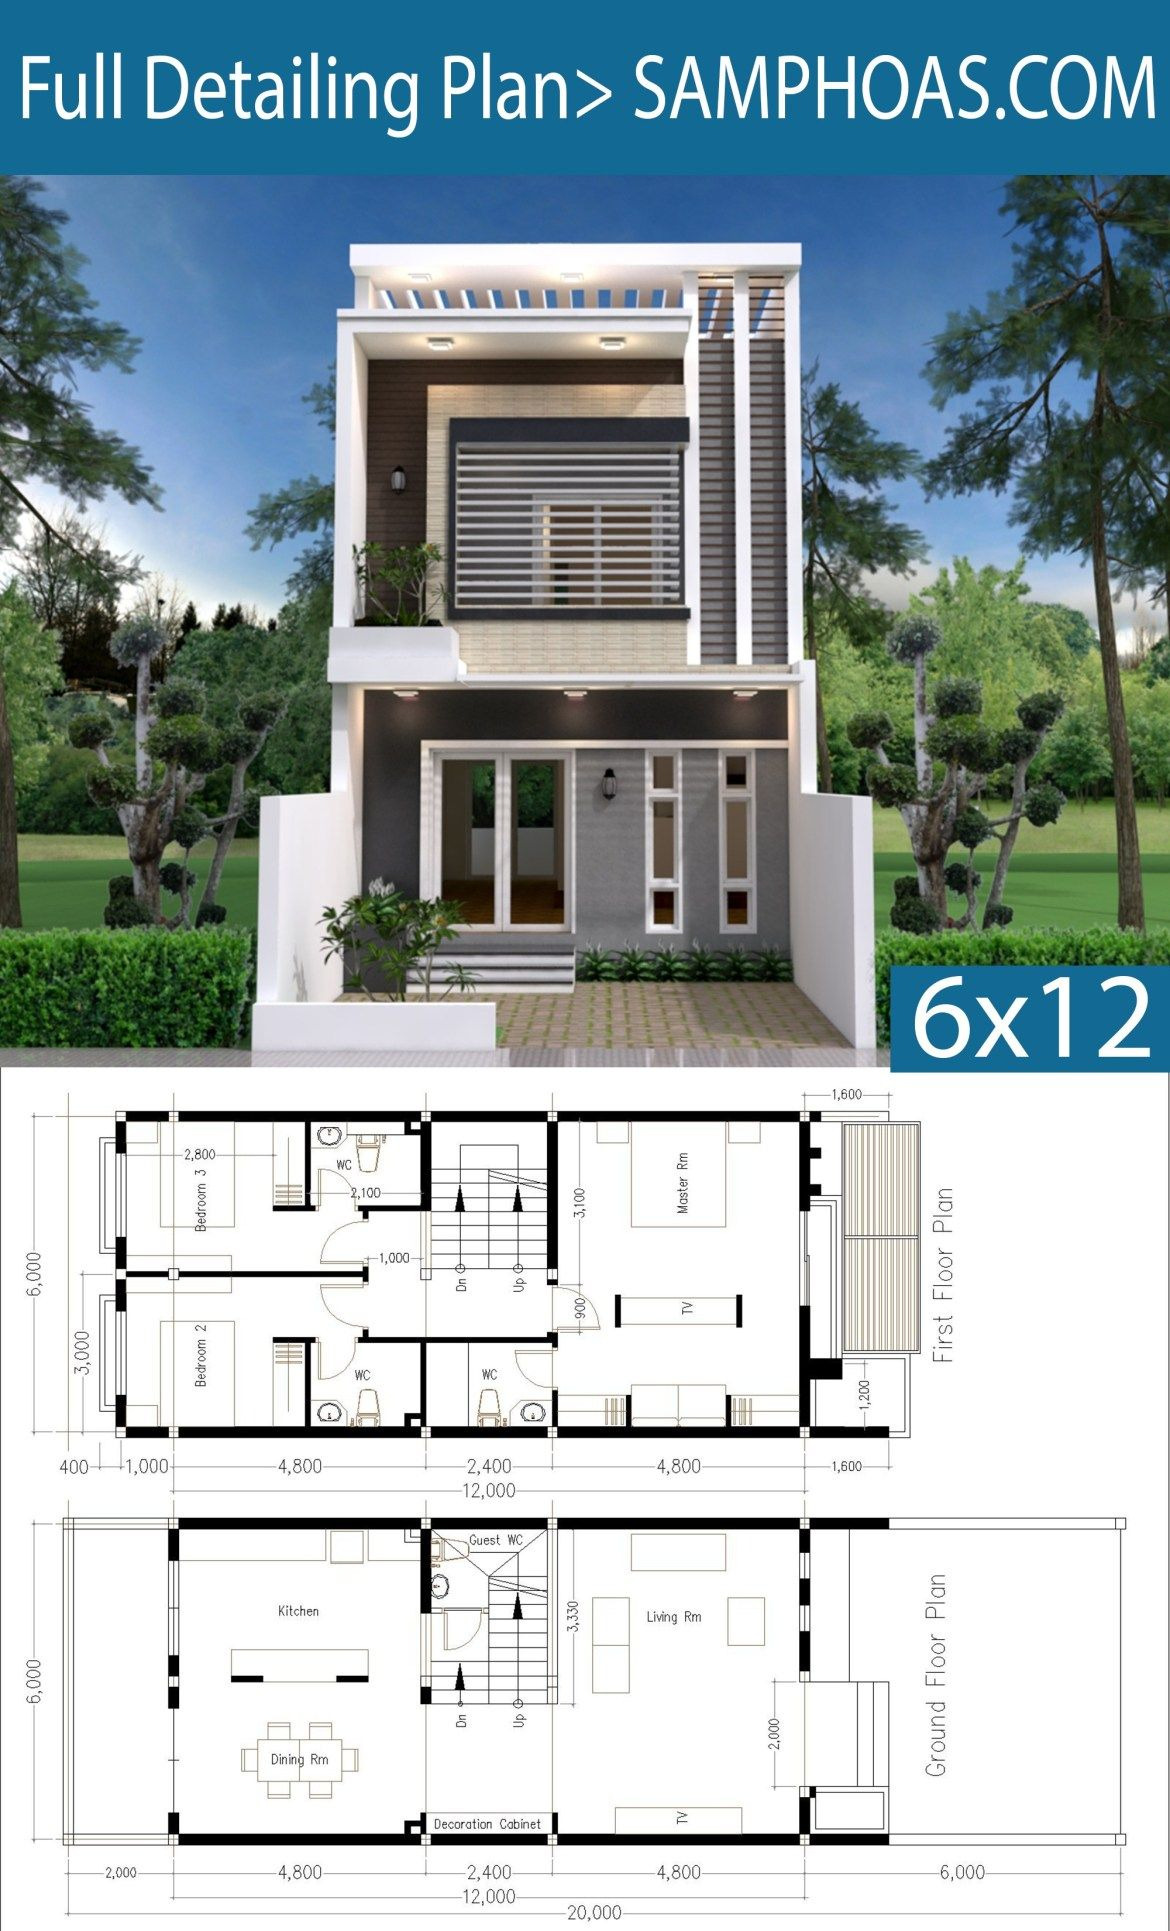 House Plans for Duplexes Three Bedroom New Modern Home Plan 6x12m with 3 Bedroom